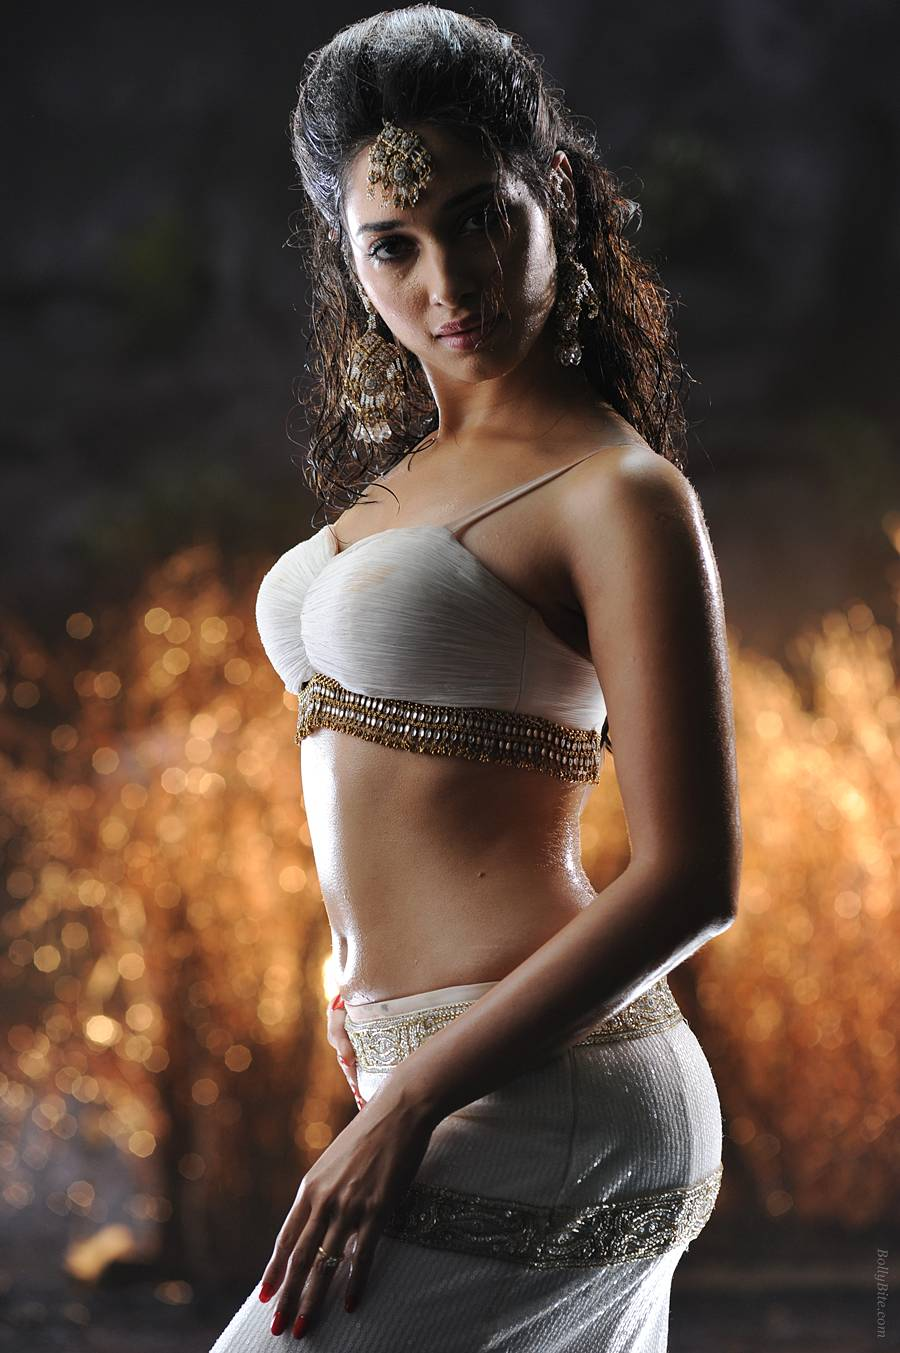 1 - Tamanna Bhatia Movie Badrinath Pics in rain